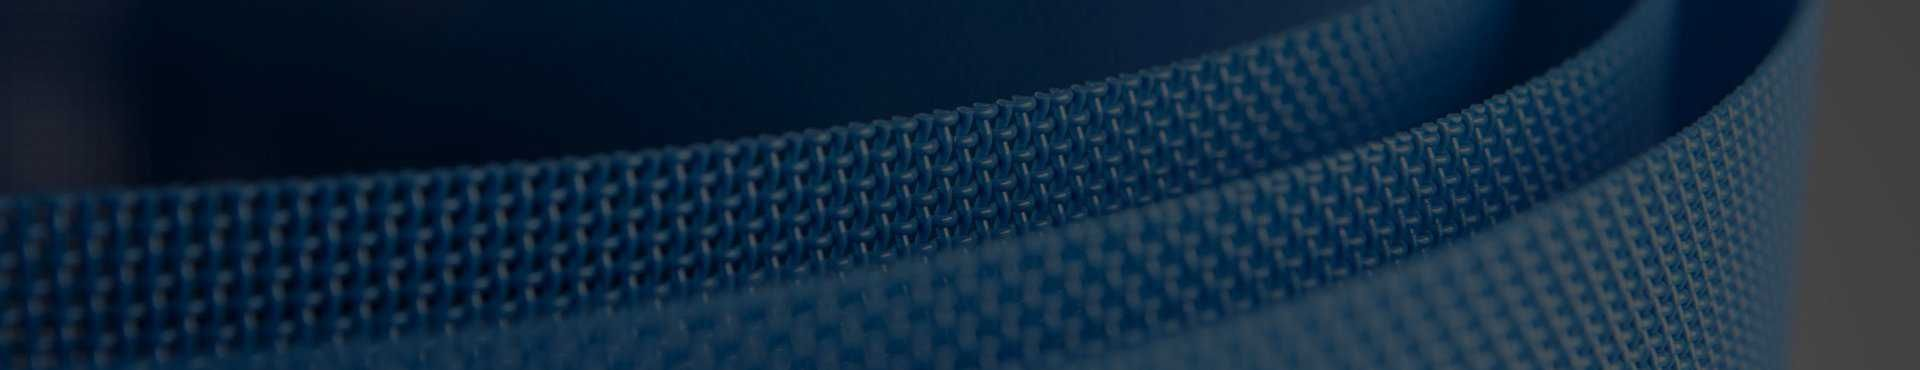 SPECIALISTS IN EXTREMETEMPERATURE CONVEYORBELTS & MATERIALS